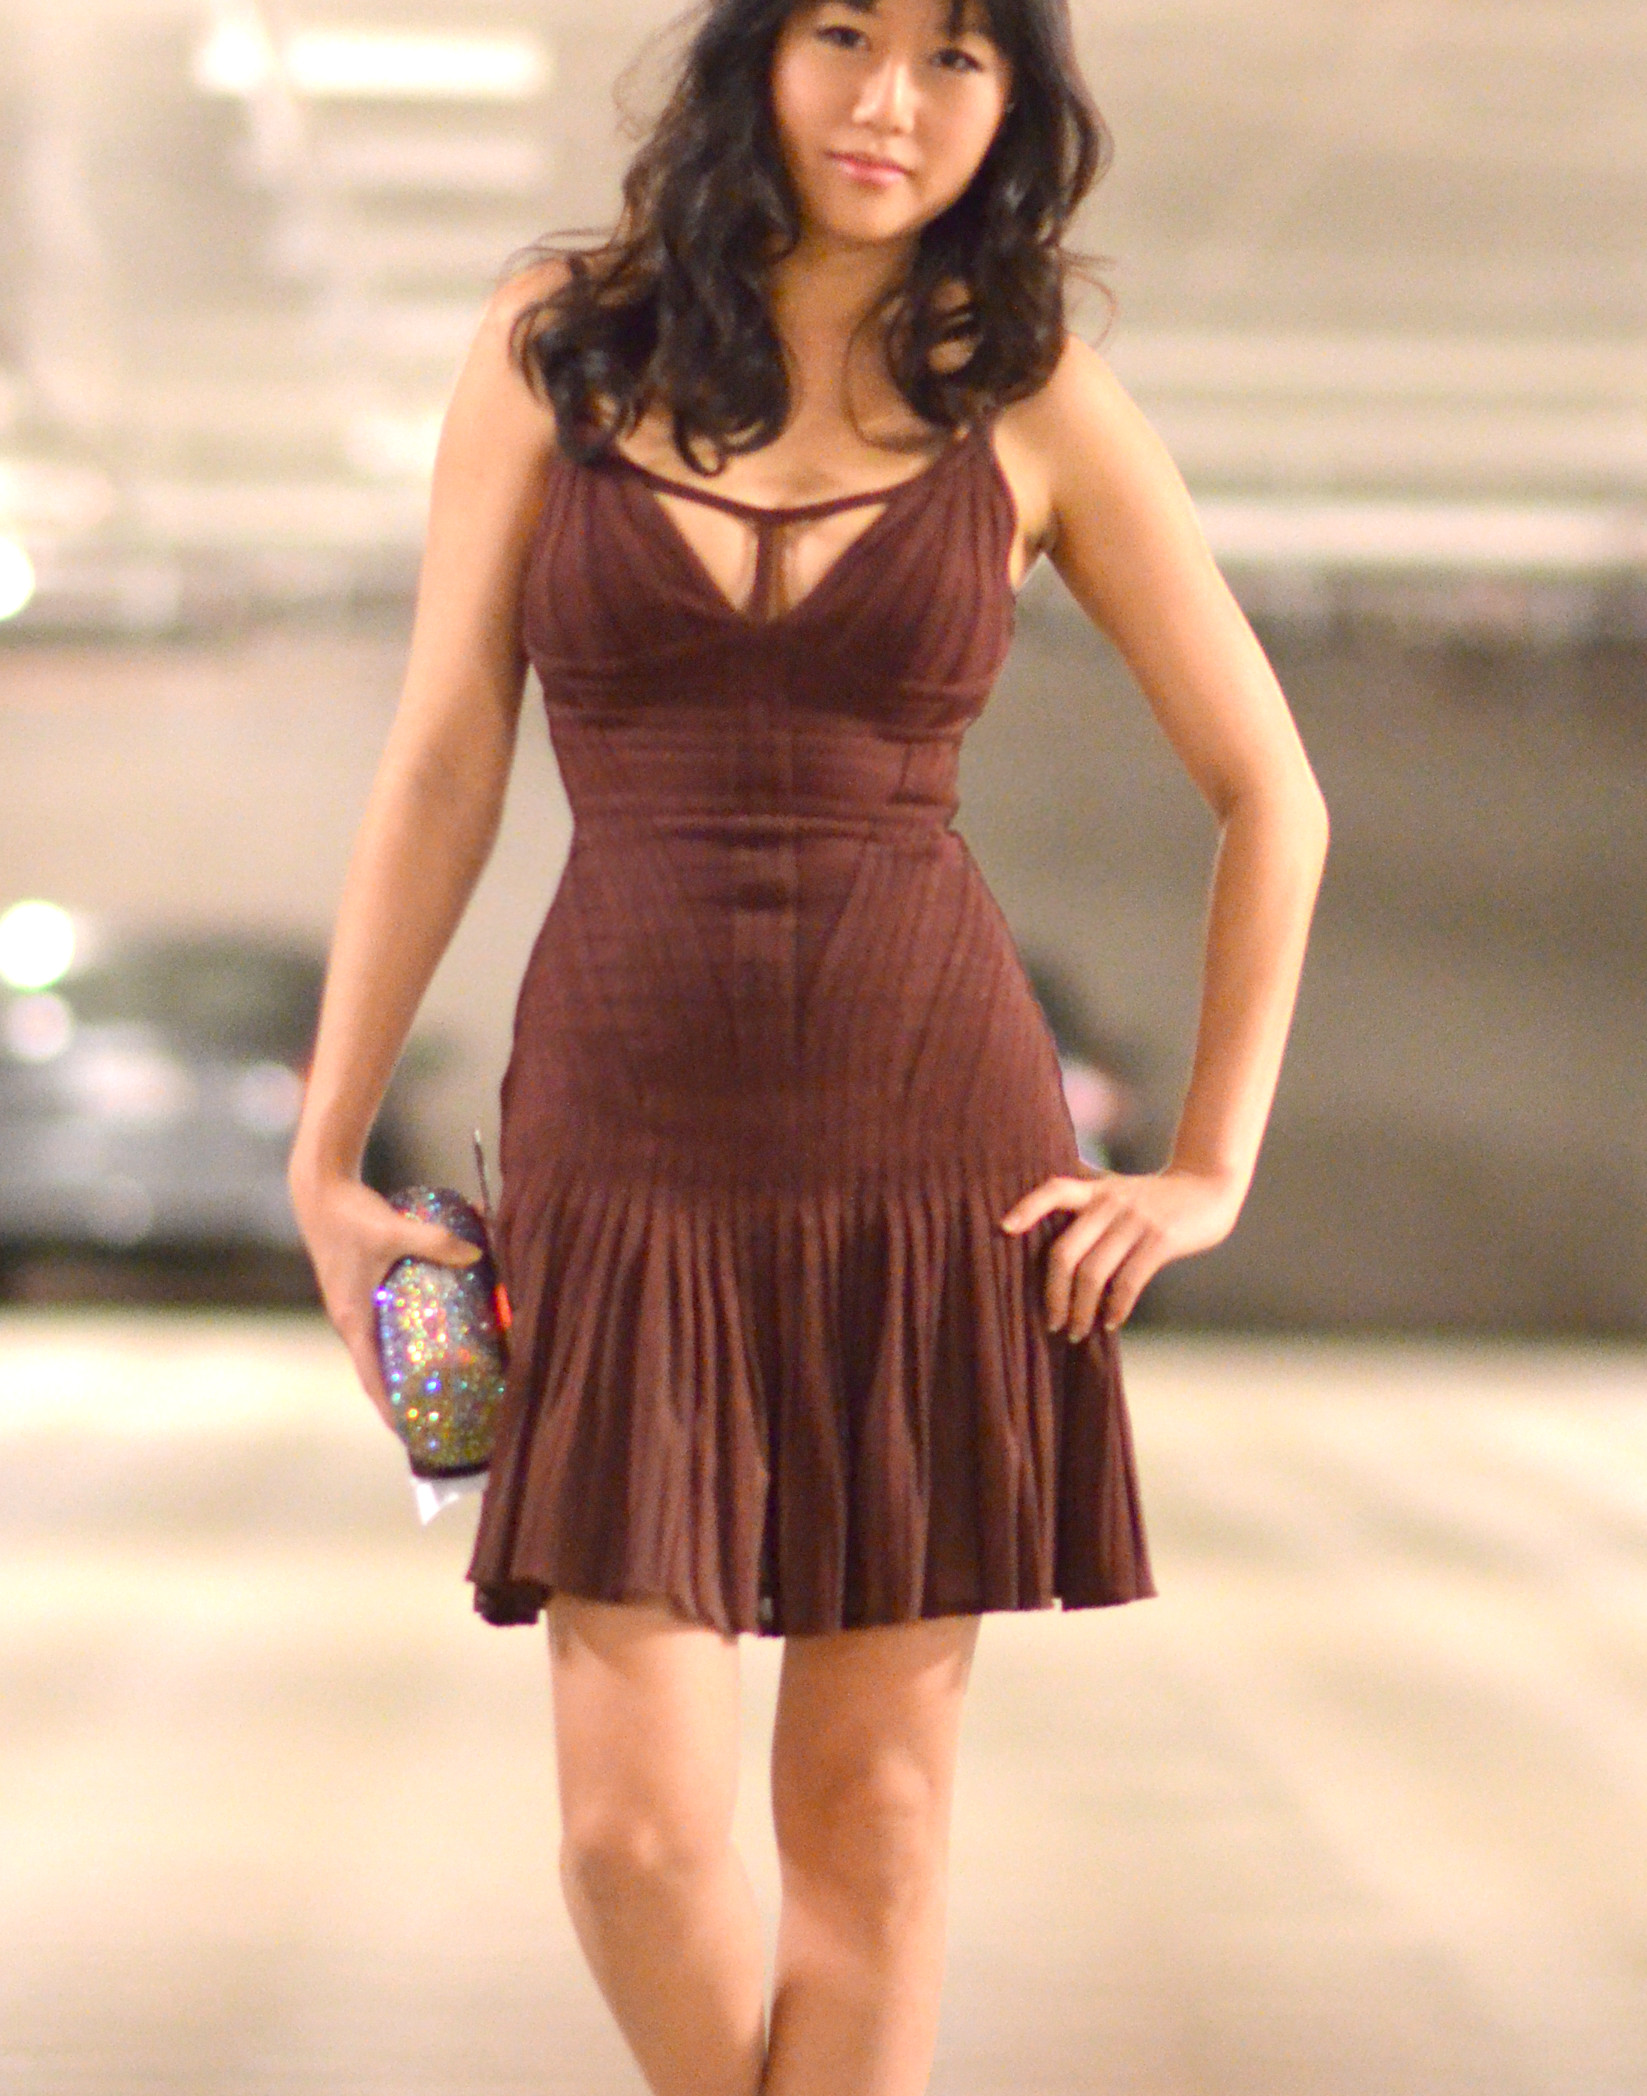 asian girl in herve leger bandage dress